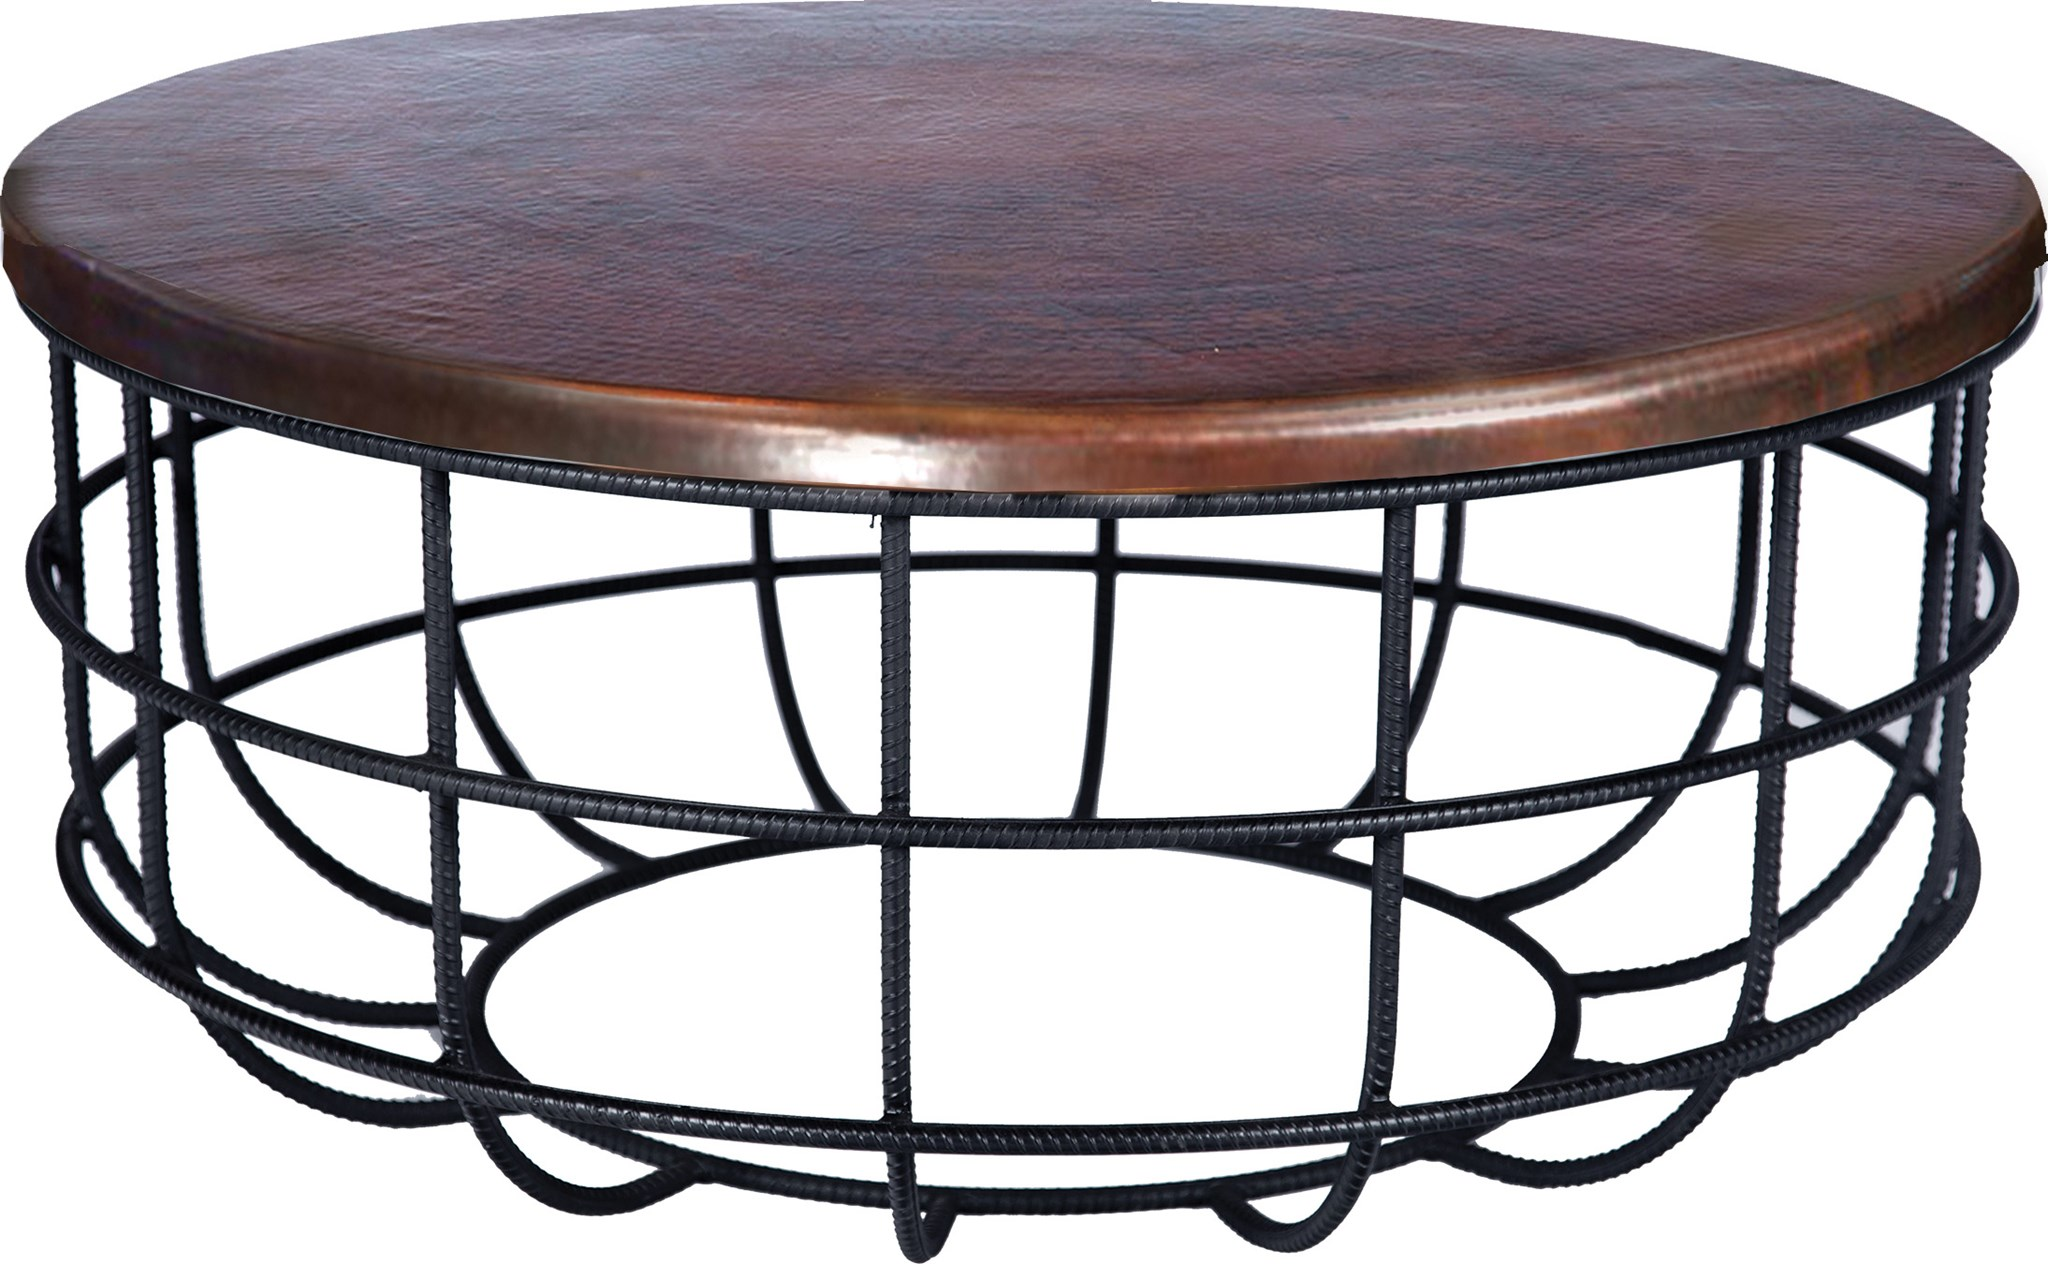 Fine Axel Coffee Table In Rebar With Round Dark Brown Hammered Copper Top Gamerscity Chair Design For Home Gamerscityorg